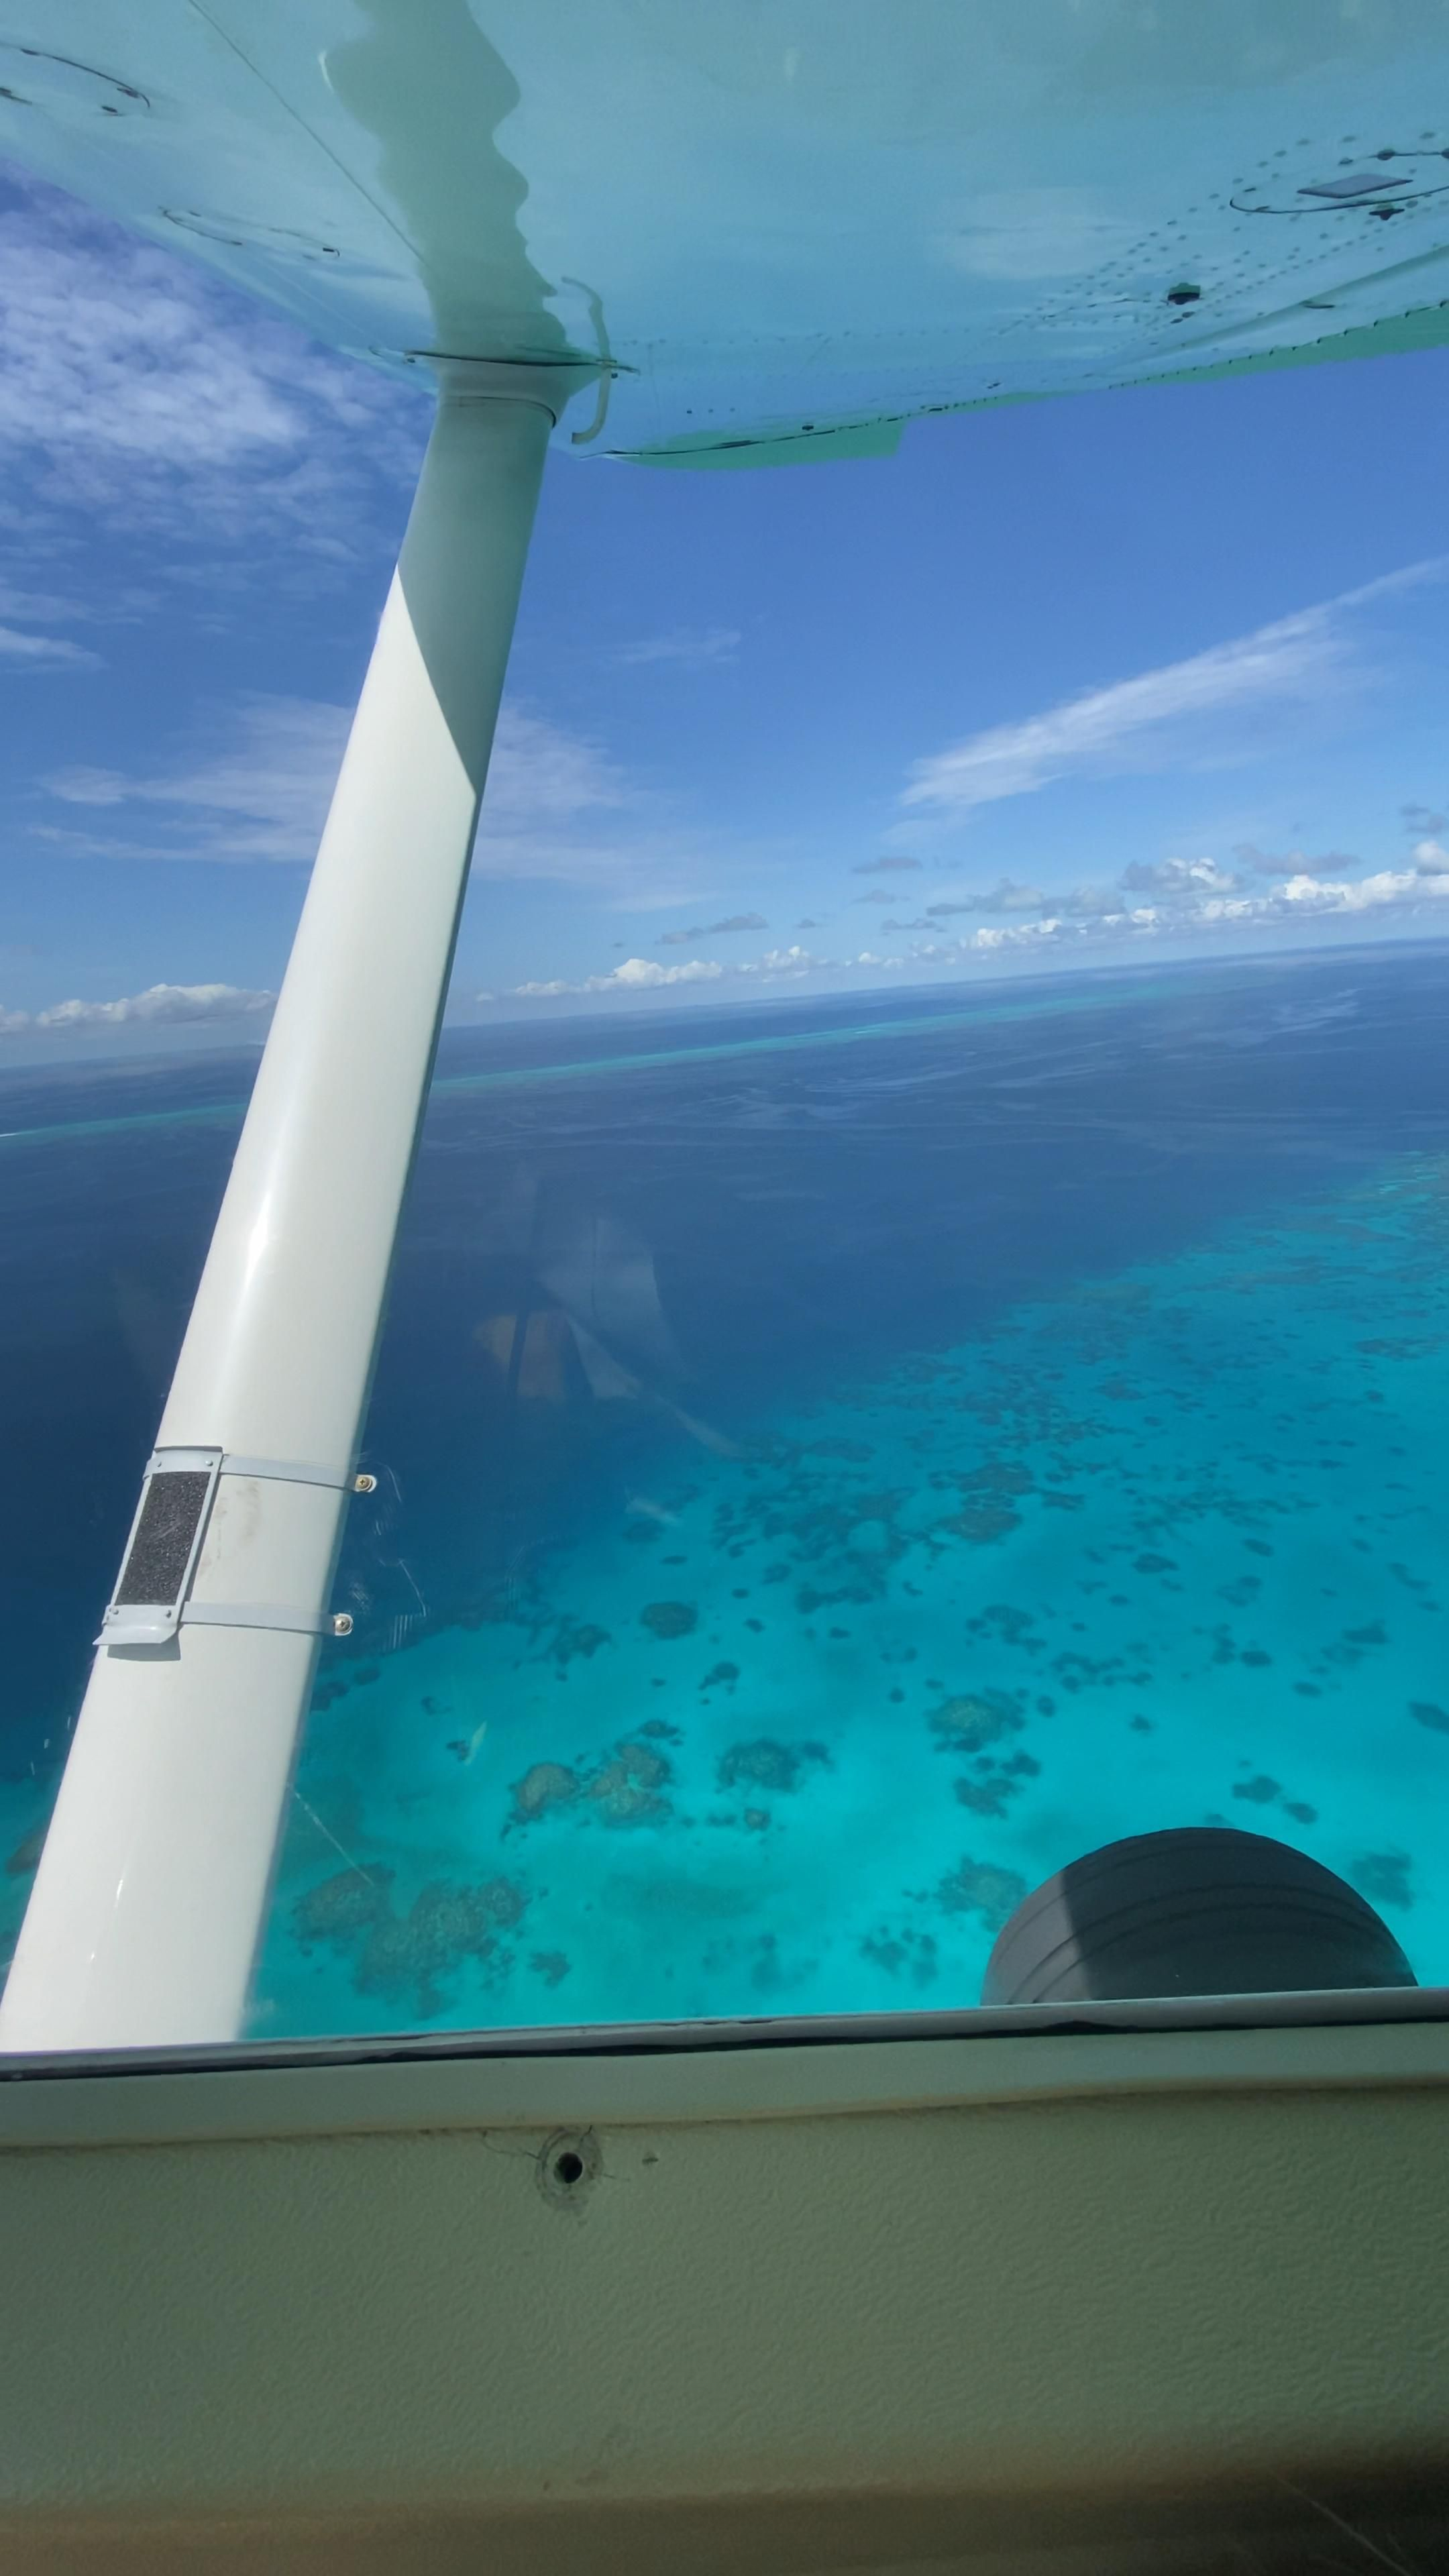 Flight Over The Great Barrier Reef Video Great Barrier Reef Australia Travel Guide Travel Photography